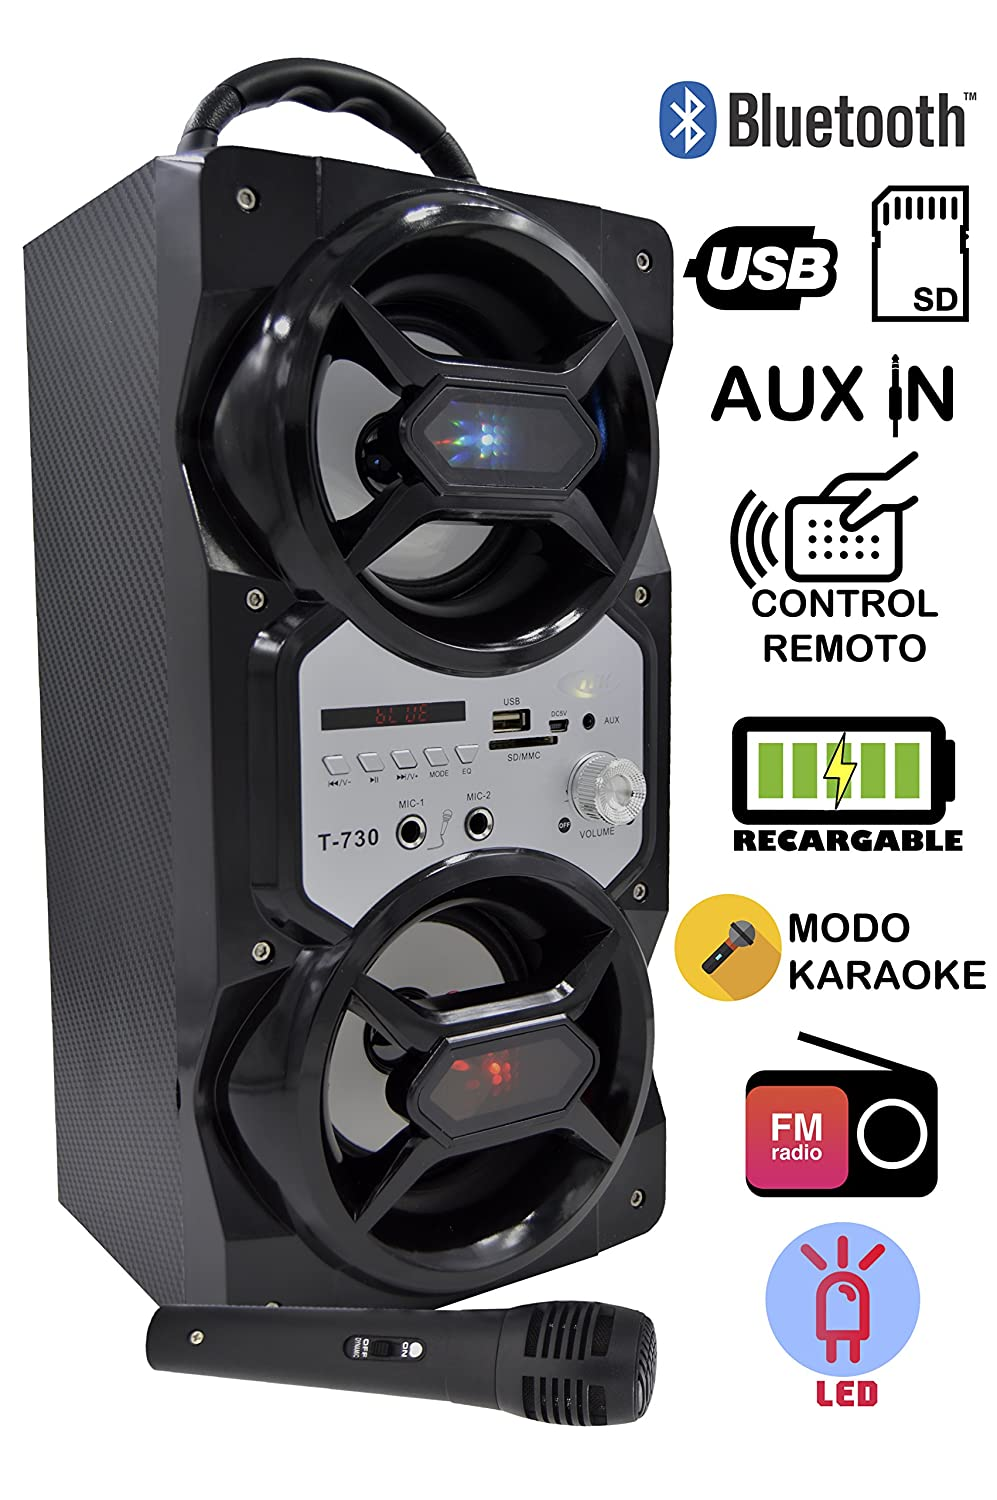 Cassa Karaoke Bluetooth, ITK Cassa altoparlante portatile bluetooth Karaoke microfono incluso Radio FM integrada + Lettore USB / SD / Line in 3.5mm, batteria ricaricabile Luci LED compatibilità iPhone Android Smartphone PC MAC TV MP3 (Modello 719-2) ELECIT